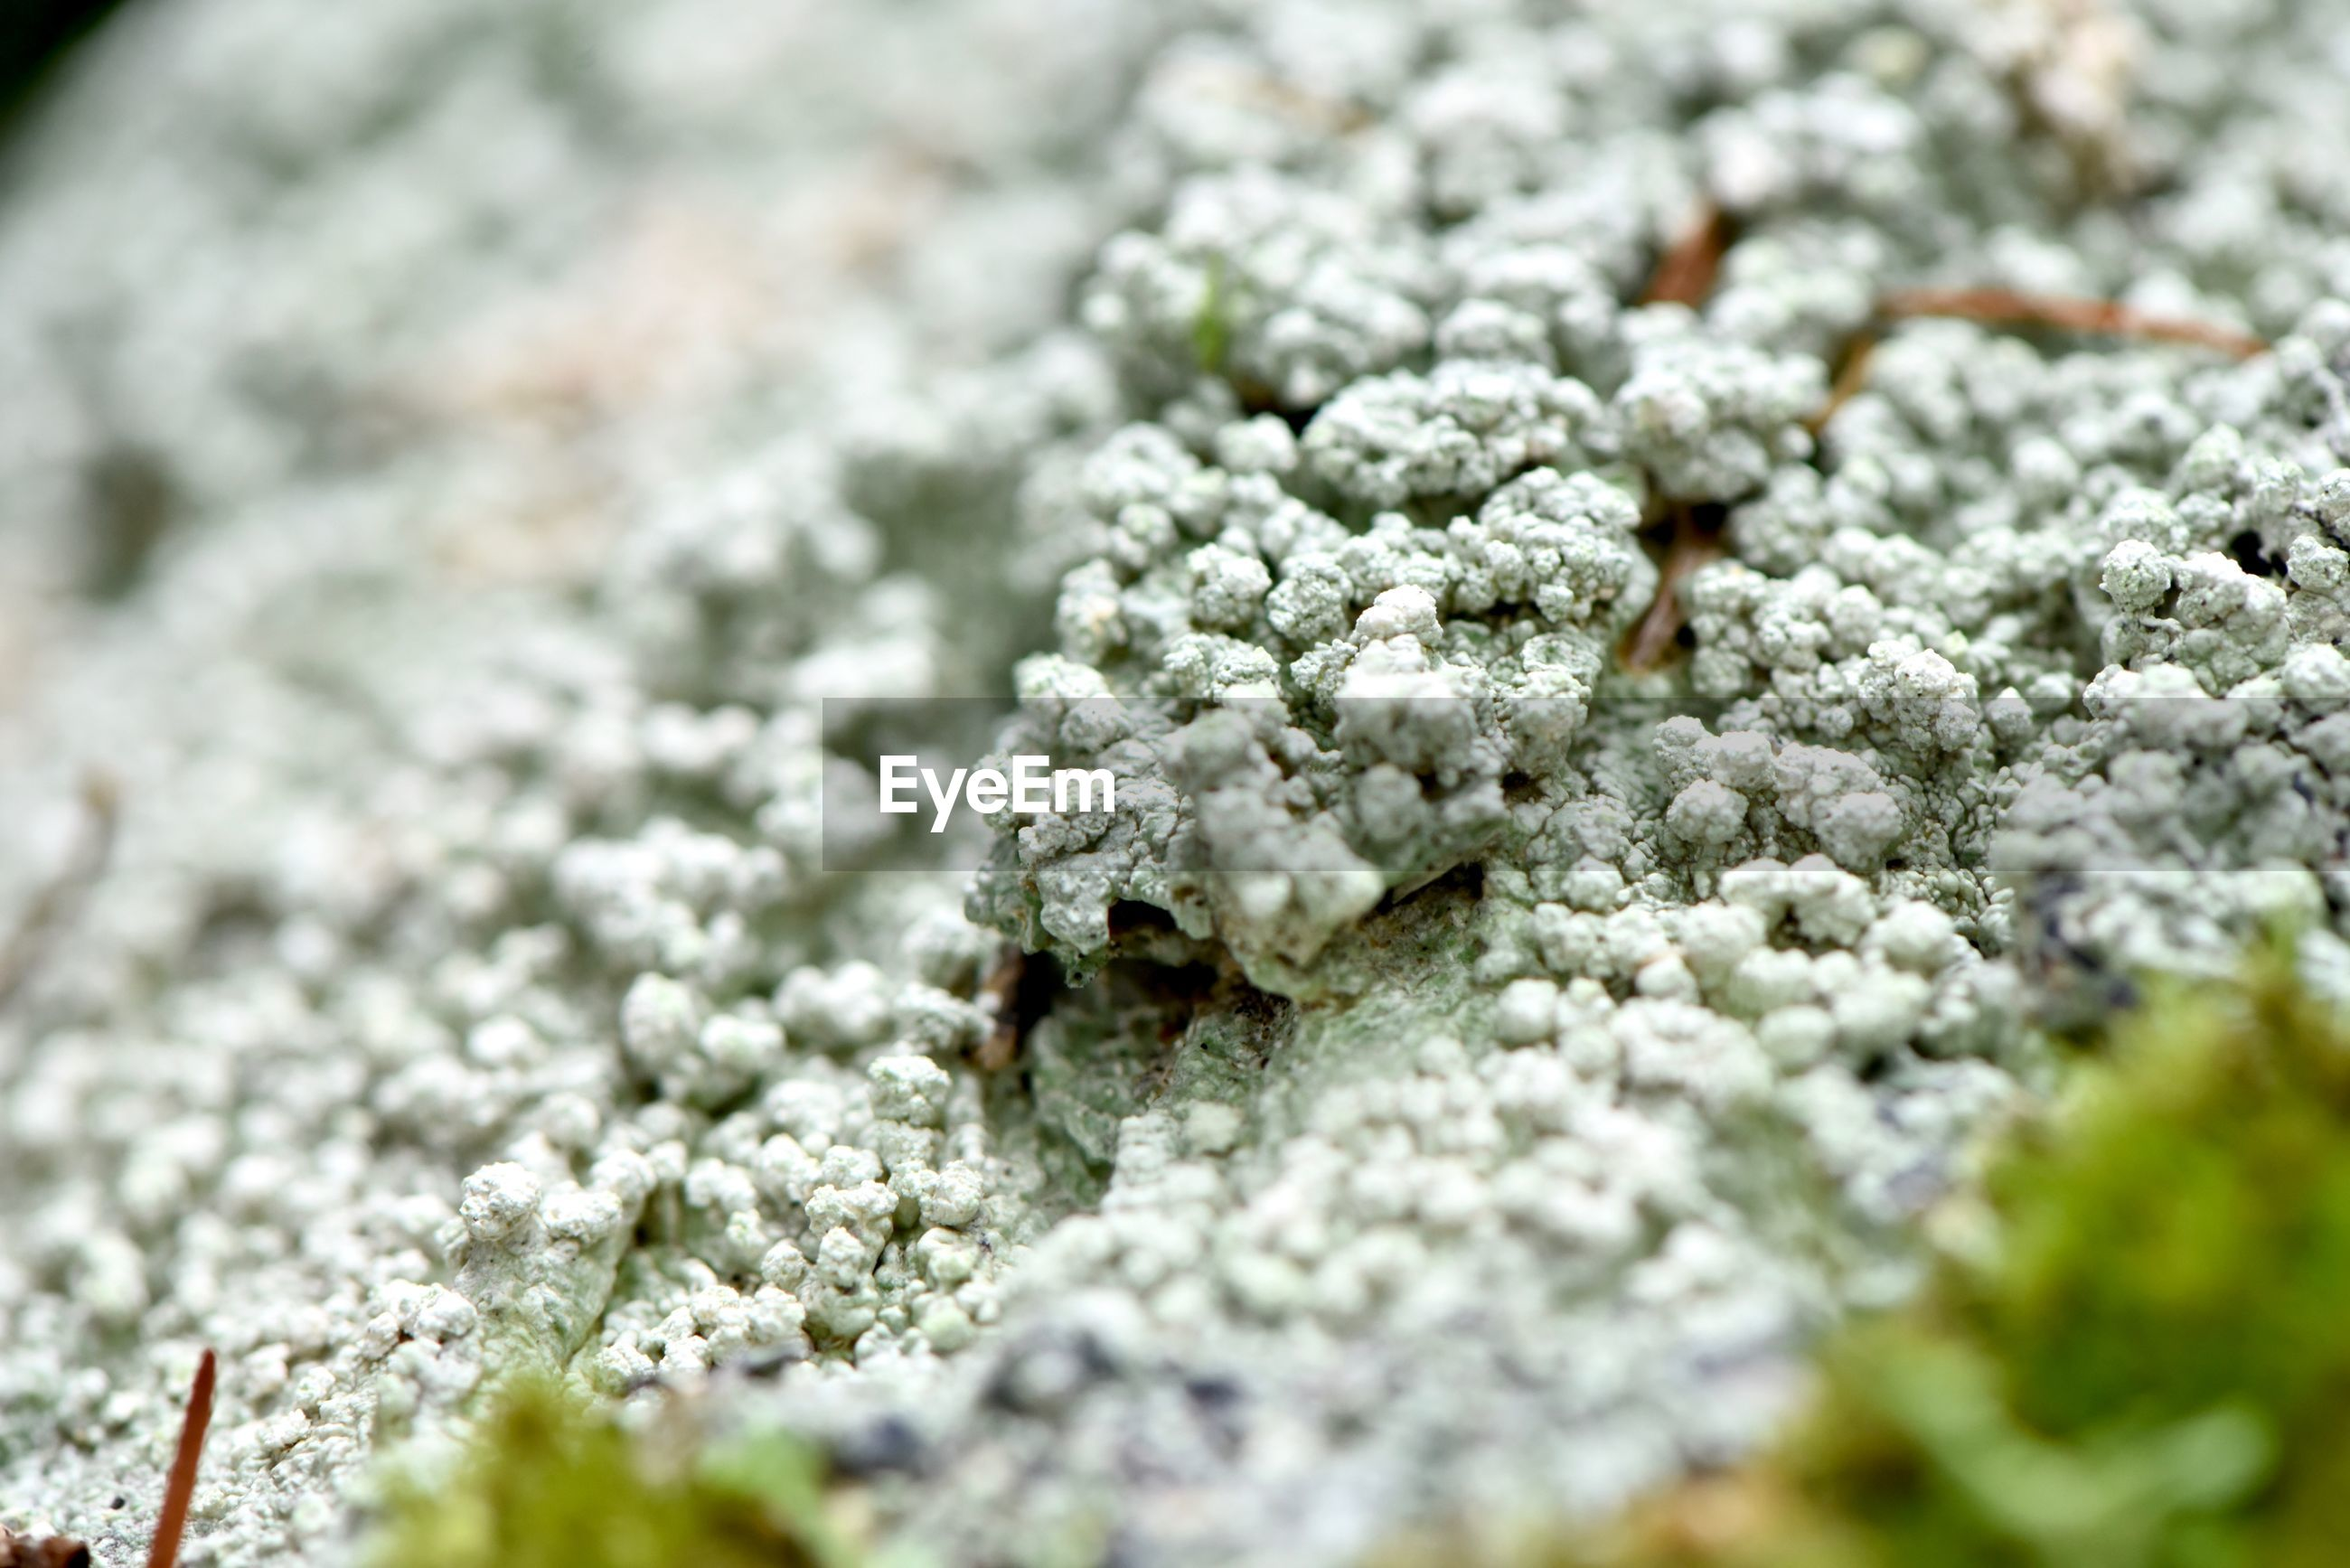 selective focus, no people, close-up, plant, flower, nature, full frame, day, food, growth, flowering plant, freshness, white color, food and drink, healthcare and medicine, outdoors, green color, backgrounds, beauty in nature